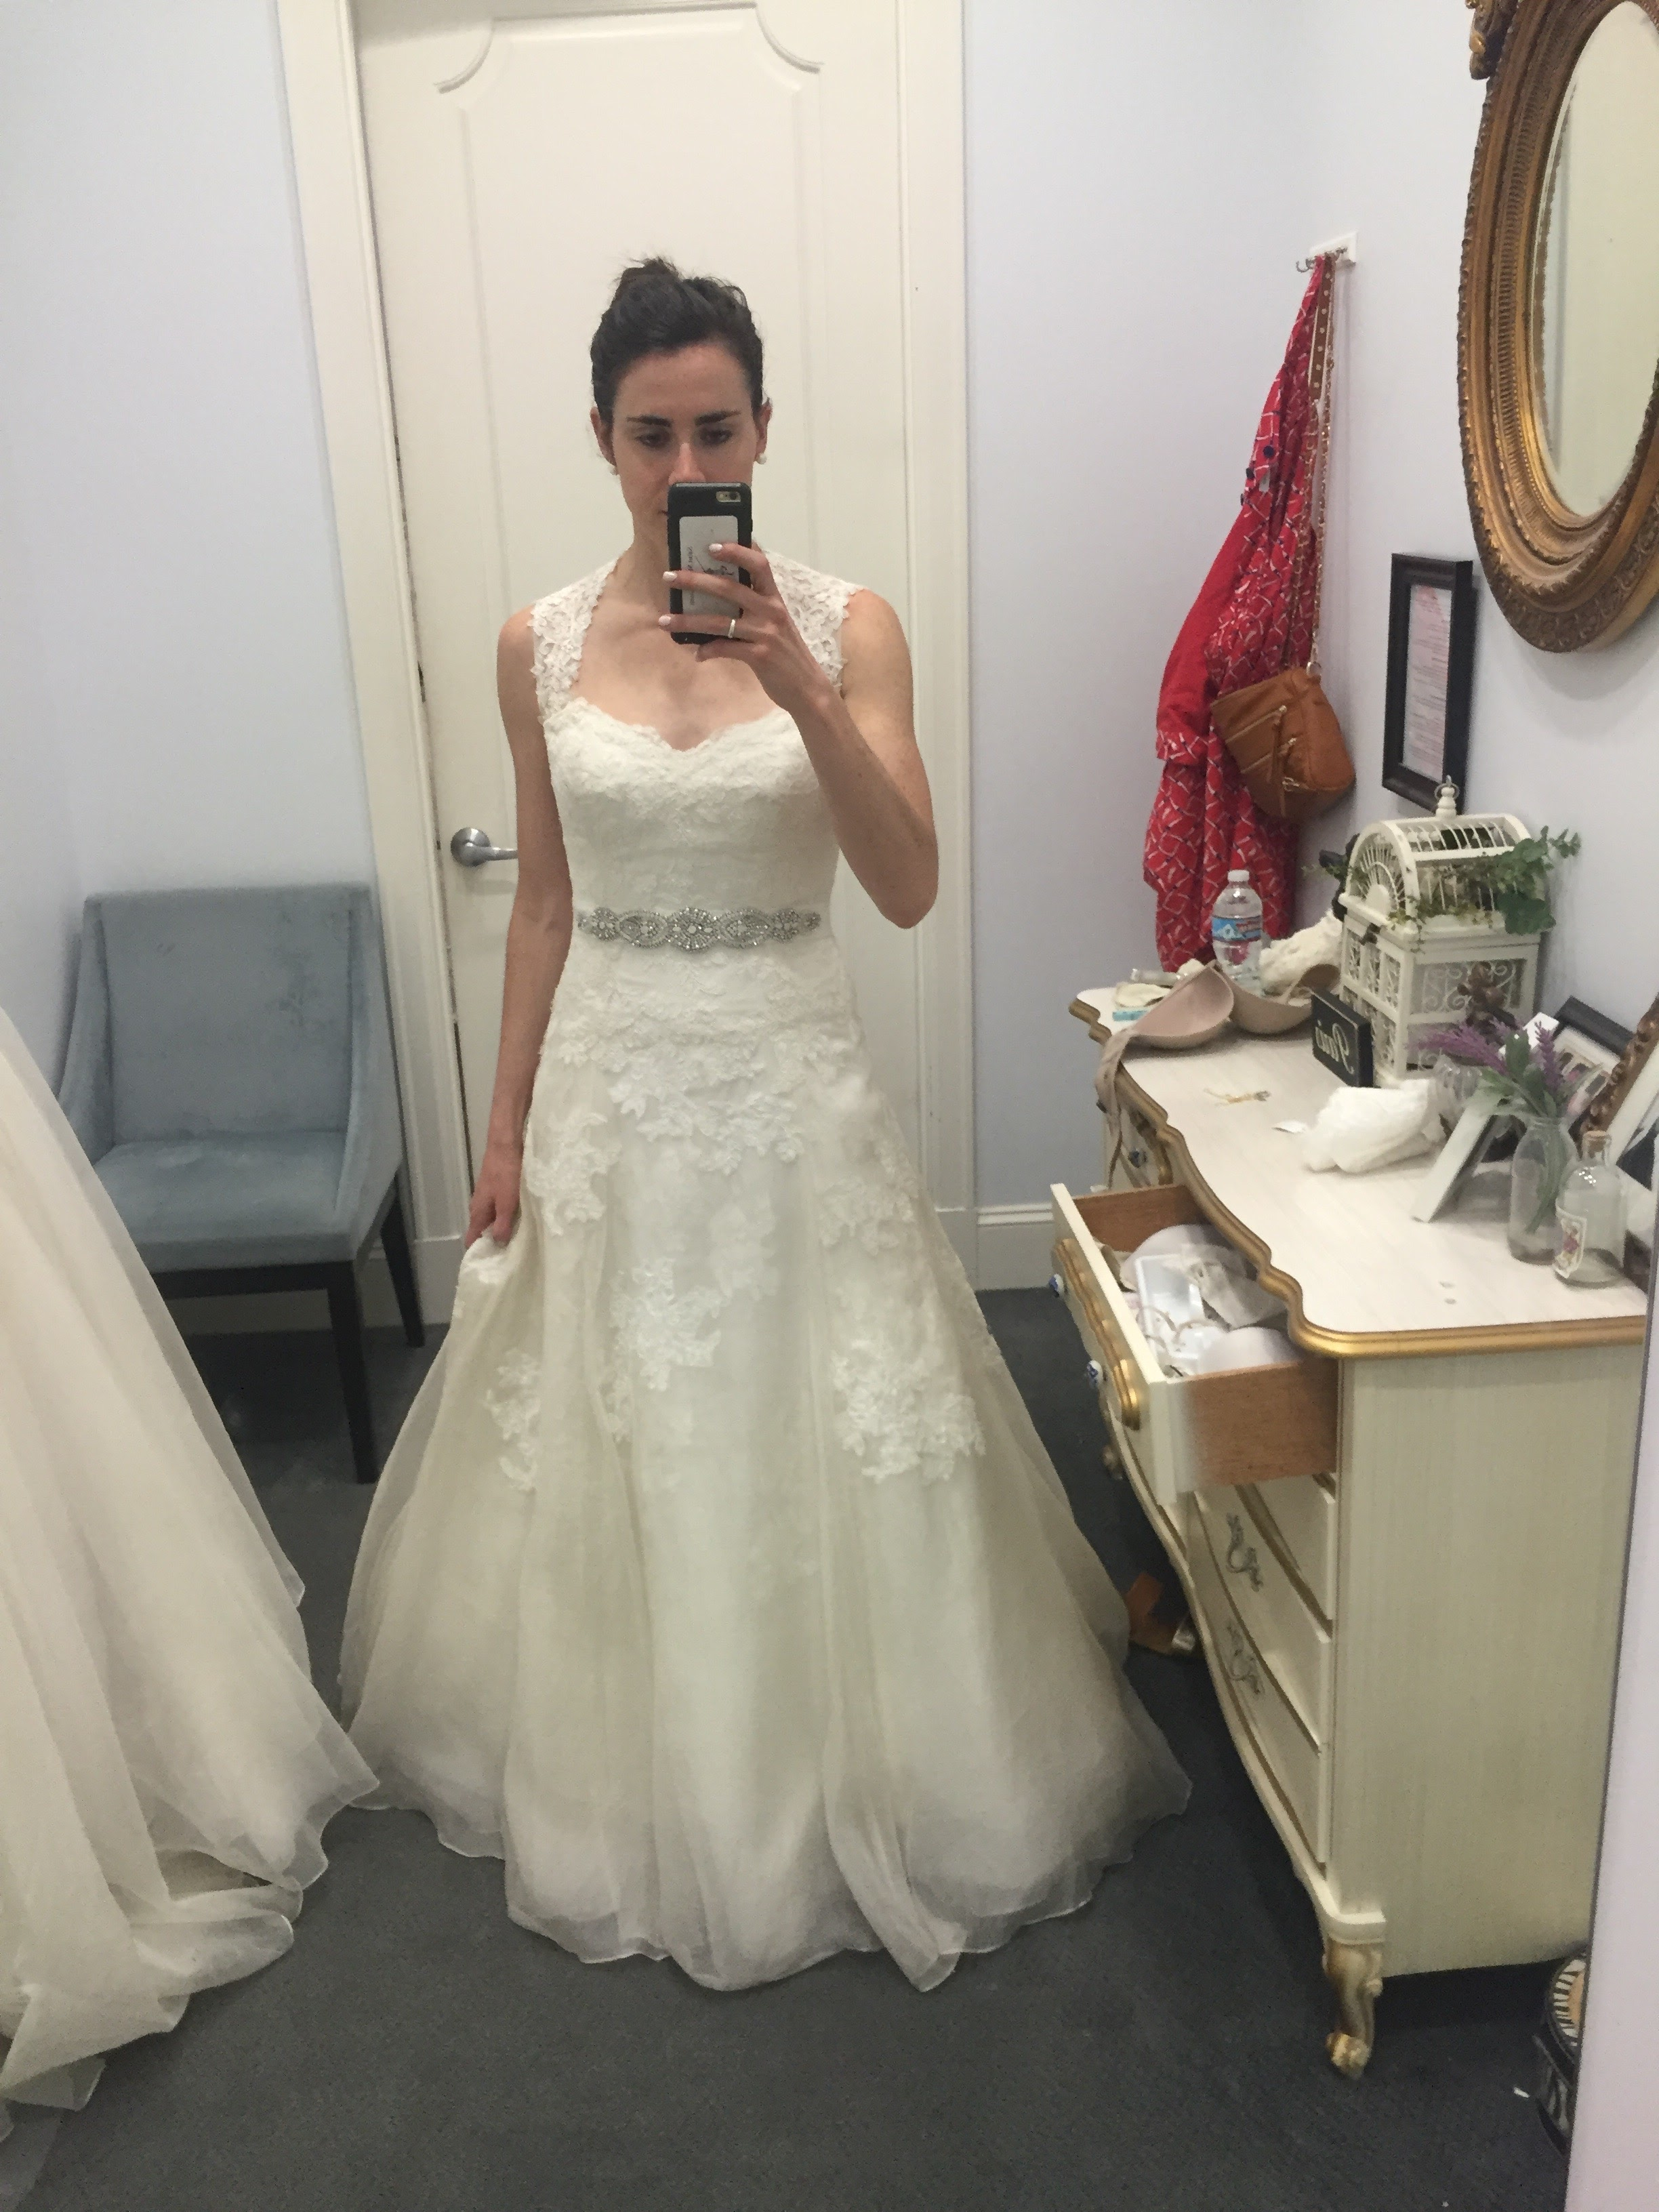 This was one of the first A-line dresses I tried on, after I realized that I didn't really like the sheath look. It was a no because it reminded me of SO many of the wedding dresses I've seen in the past few years. It also wasn't the best fit on me.